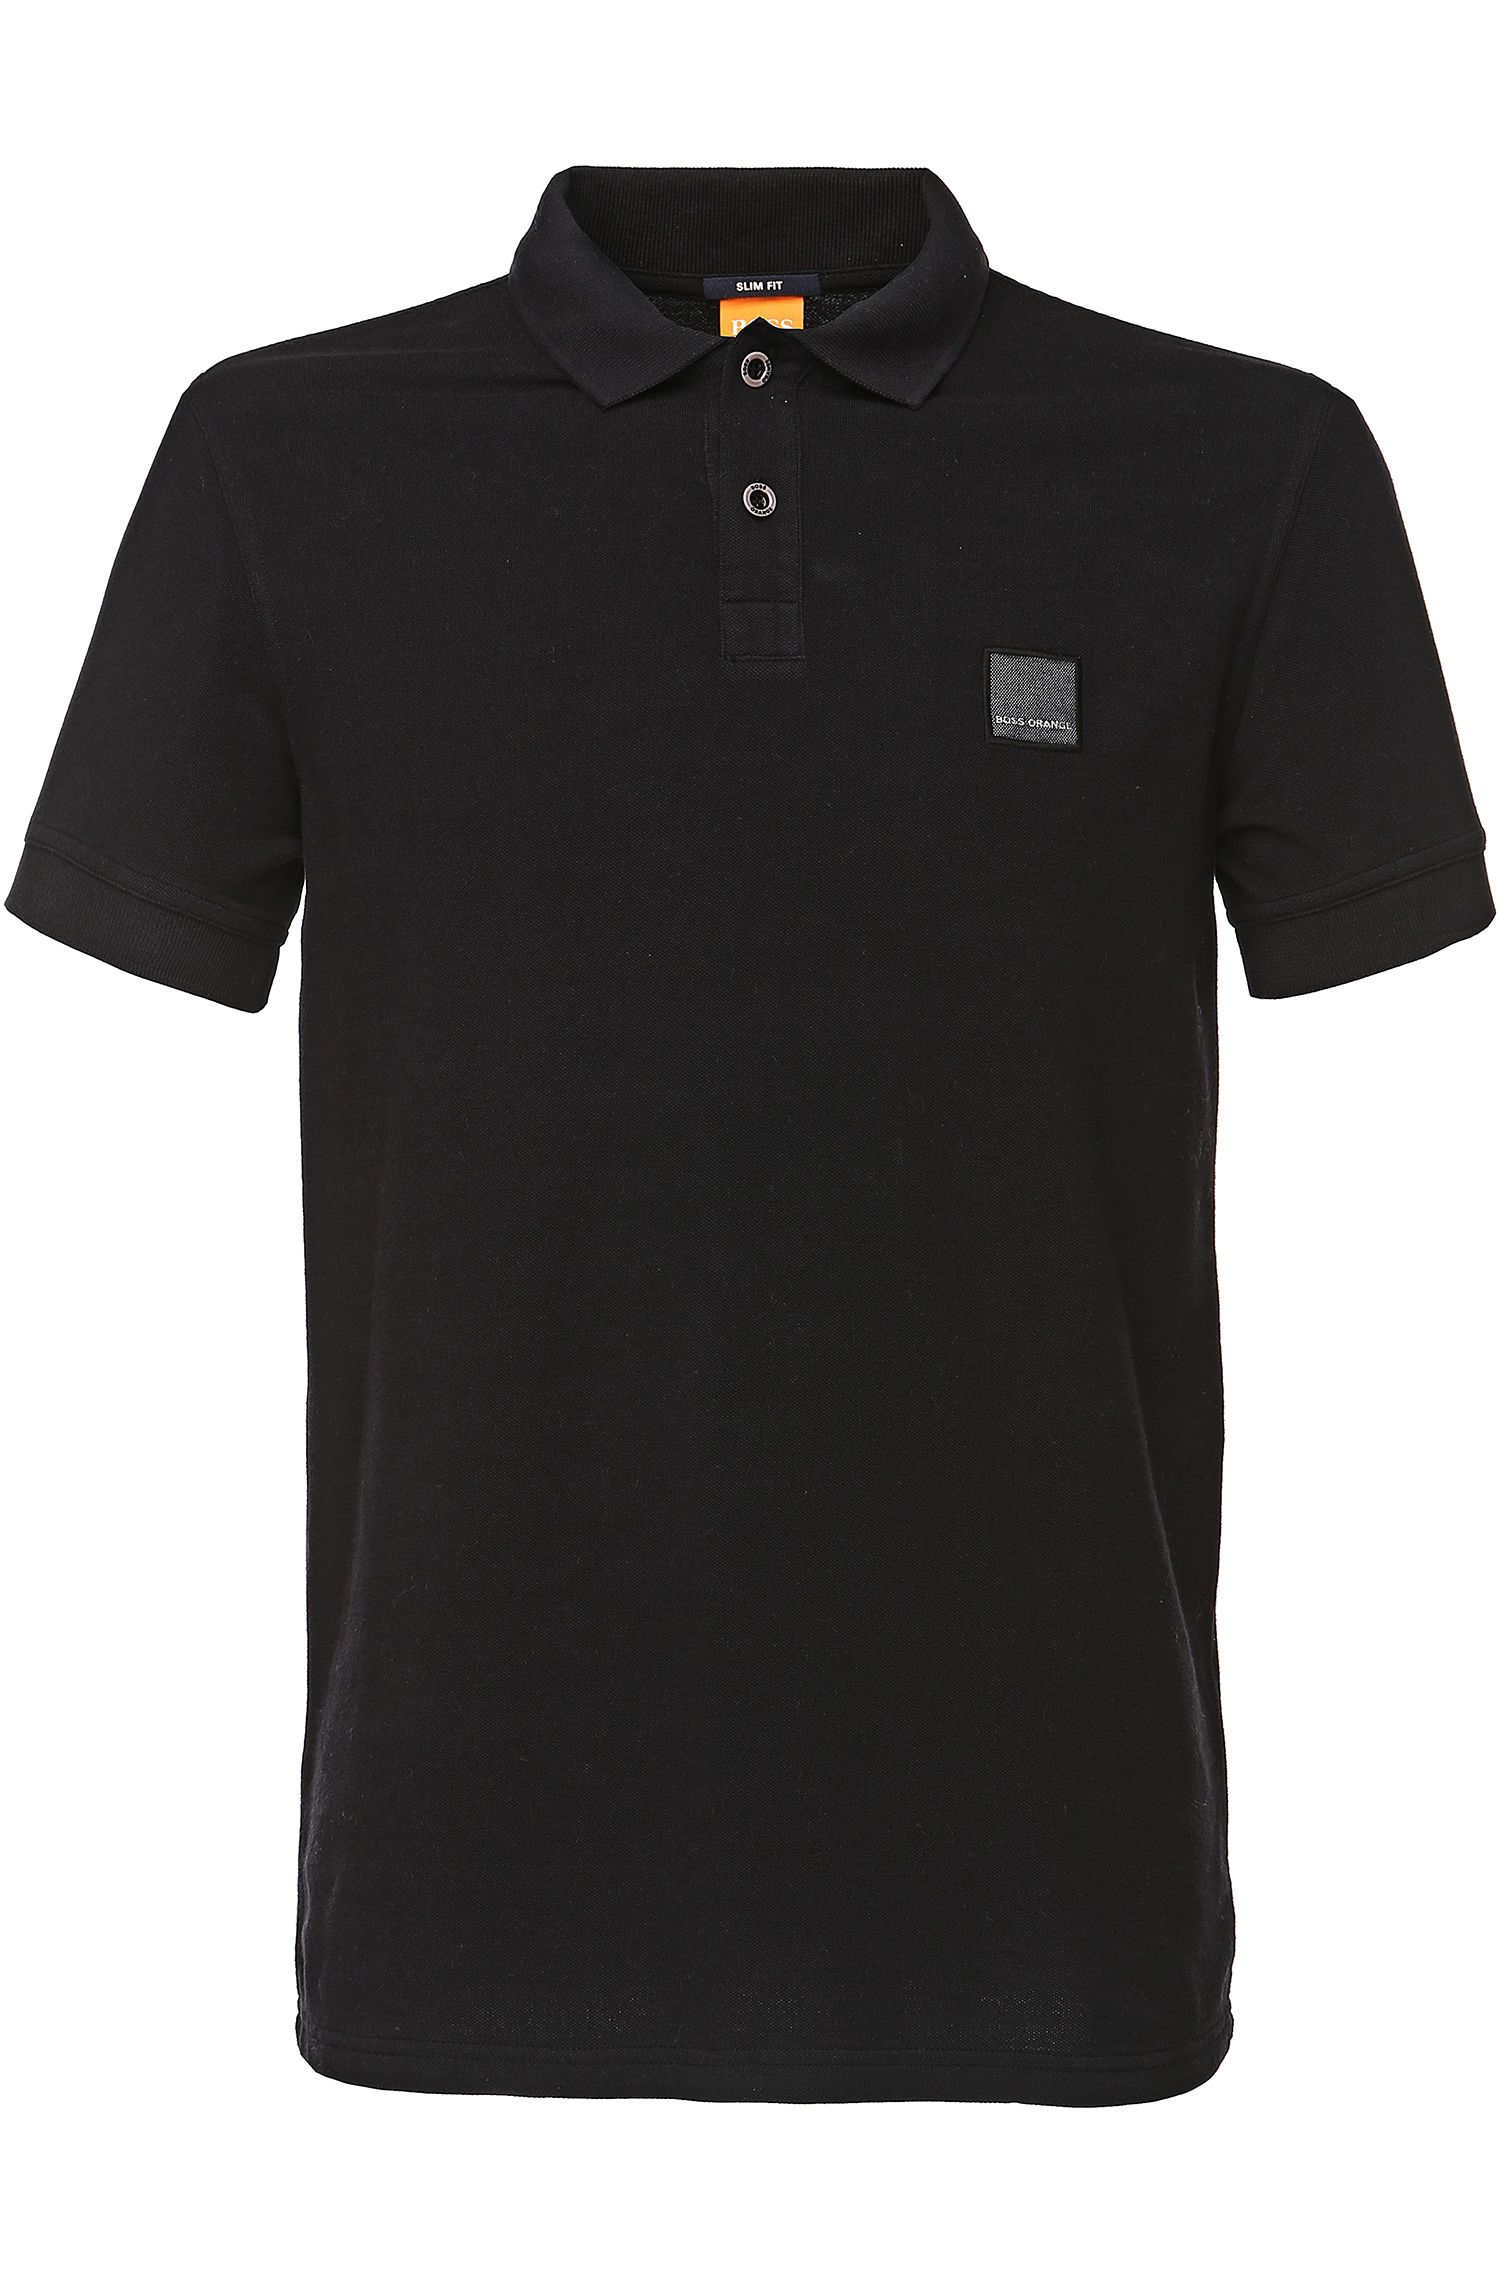 Cotton Polo Shirt, Slim Fit | Pascha, Black